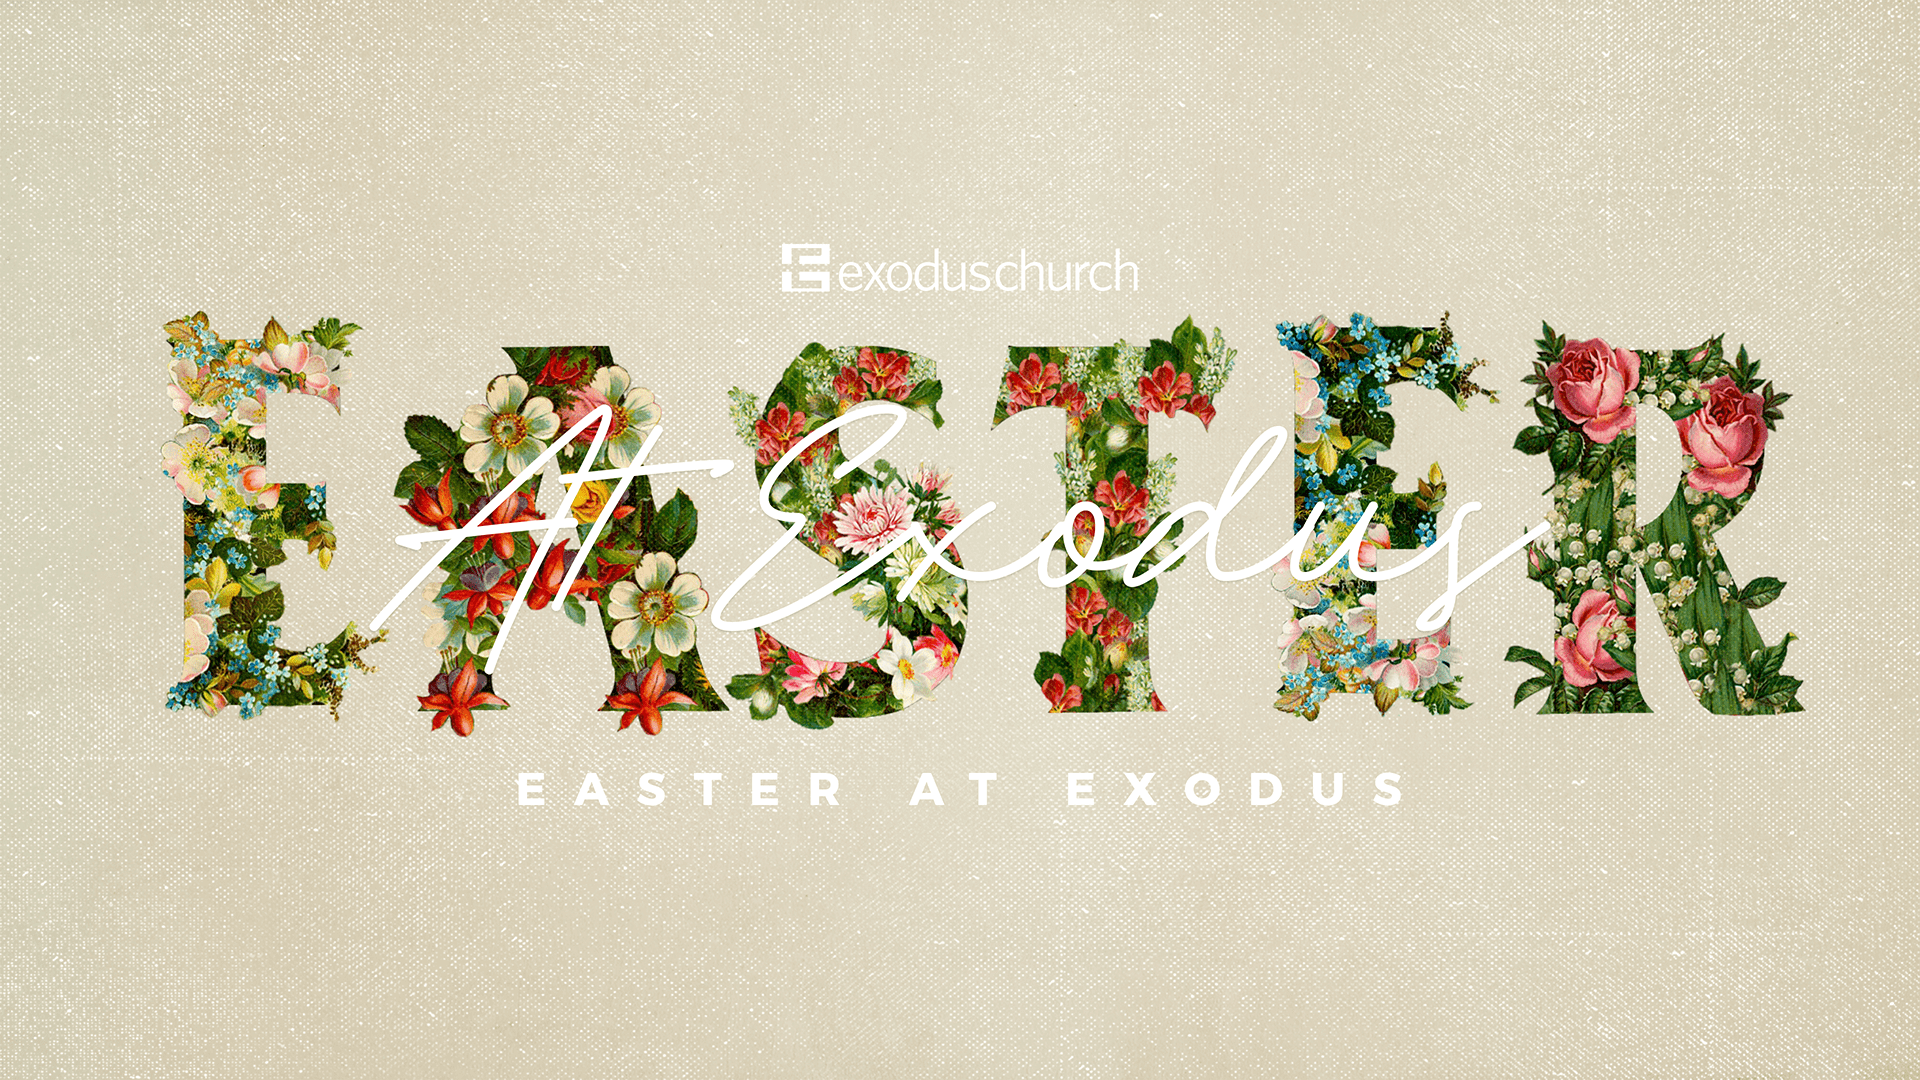 Easter at Exodus